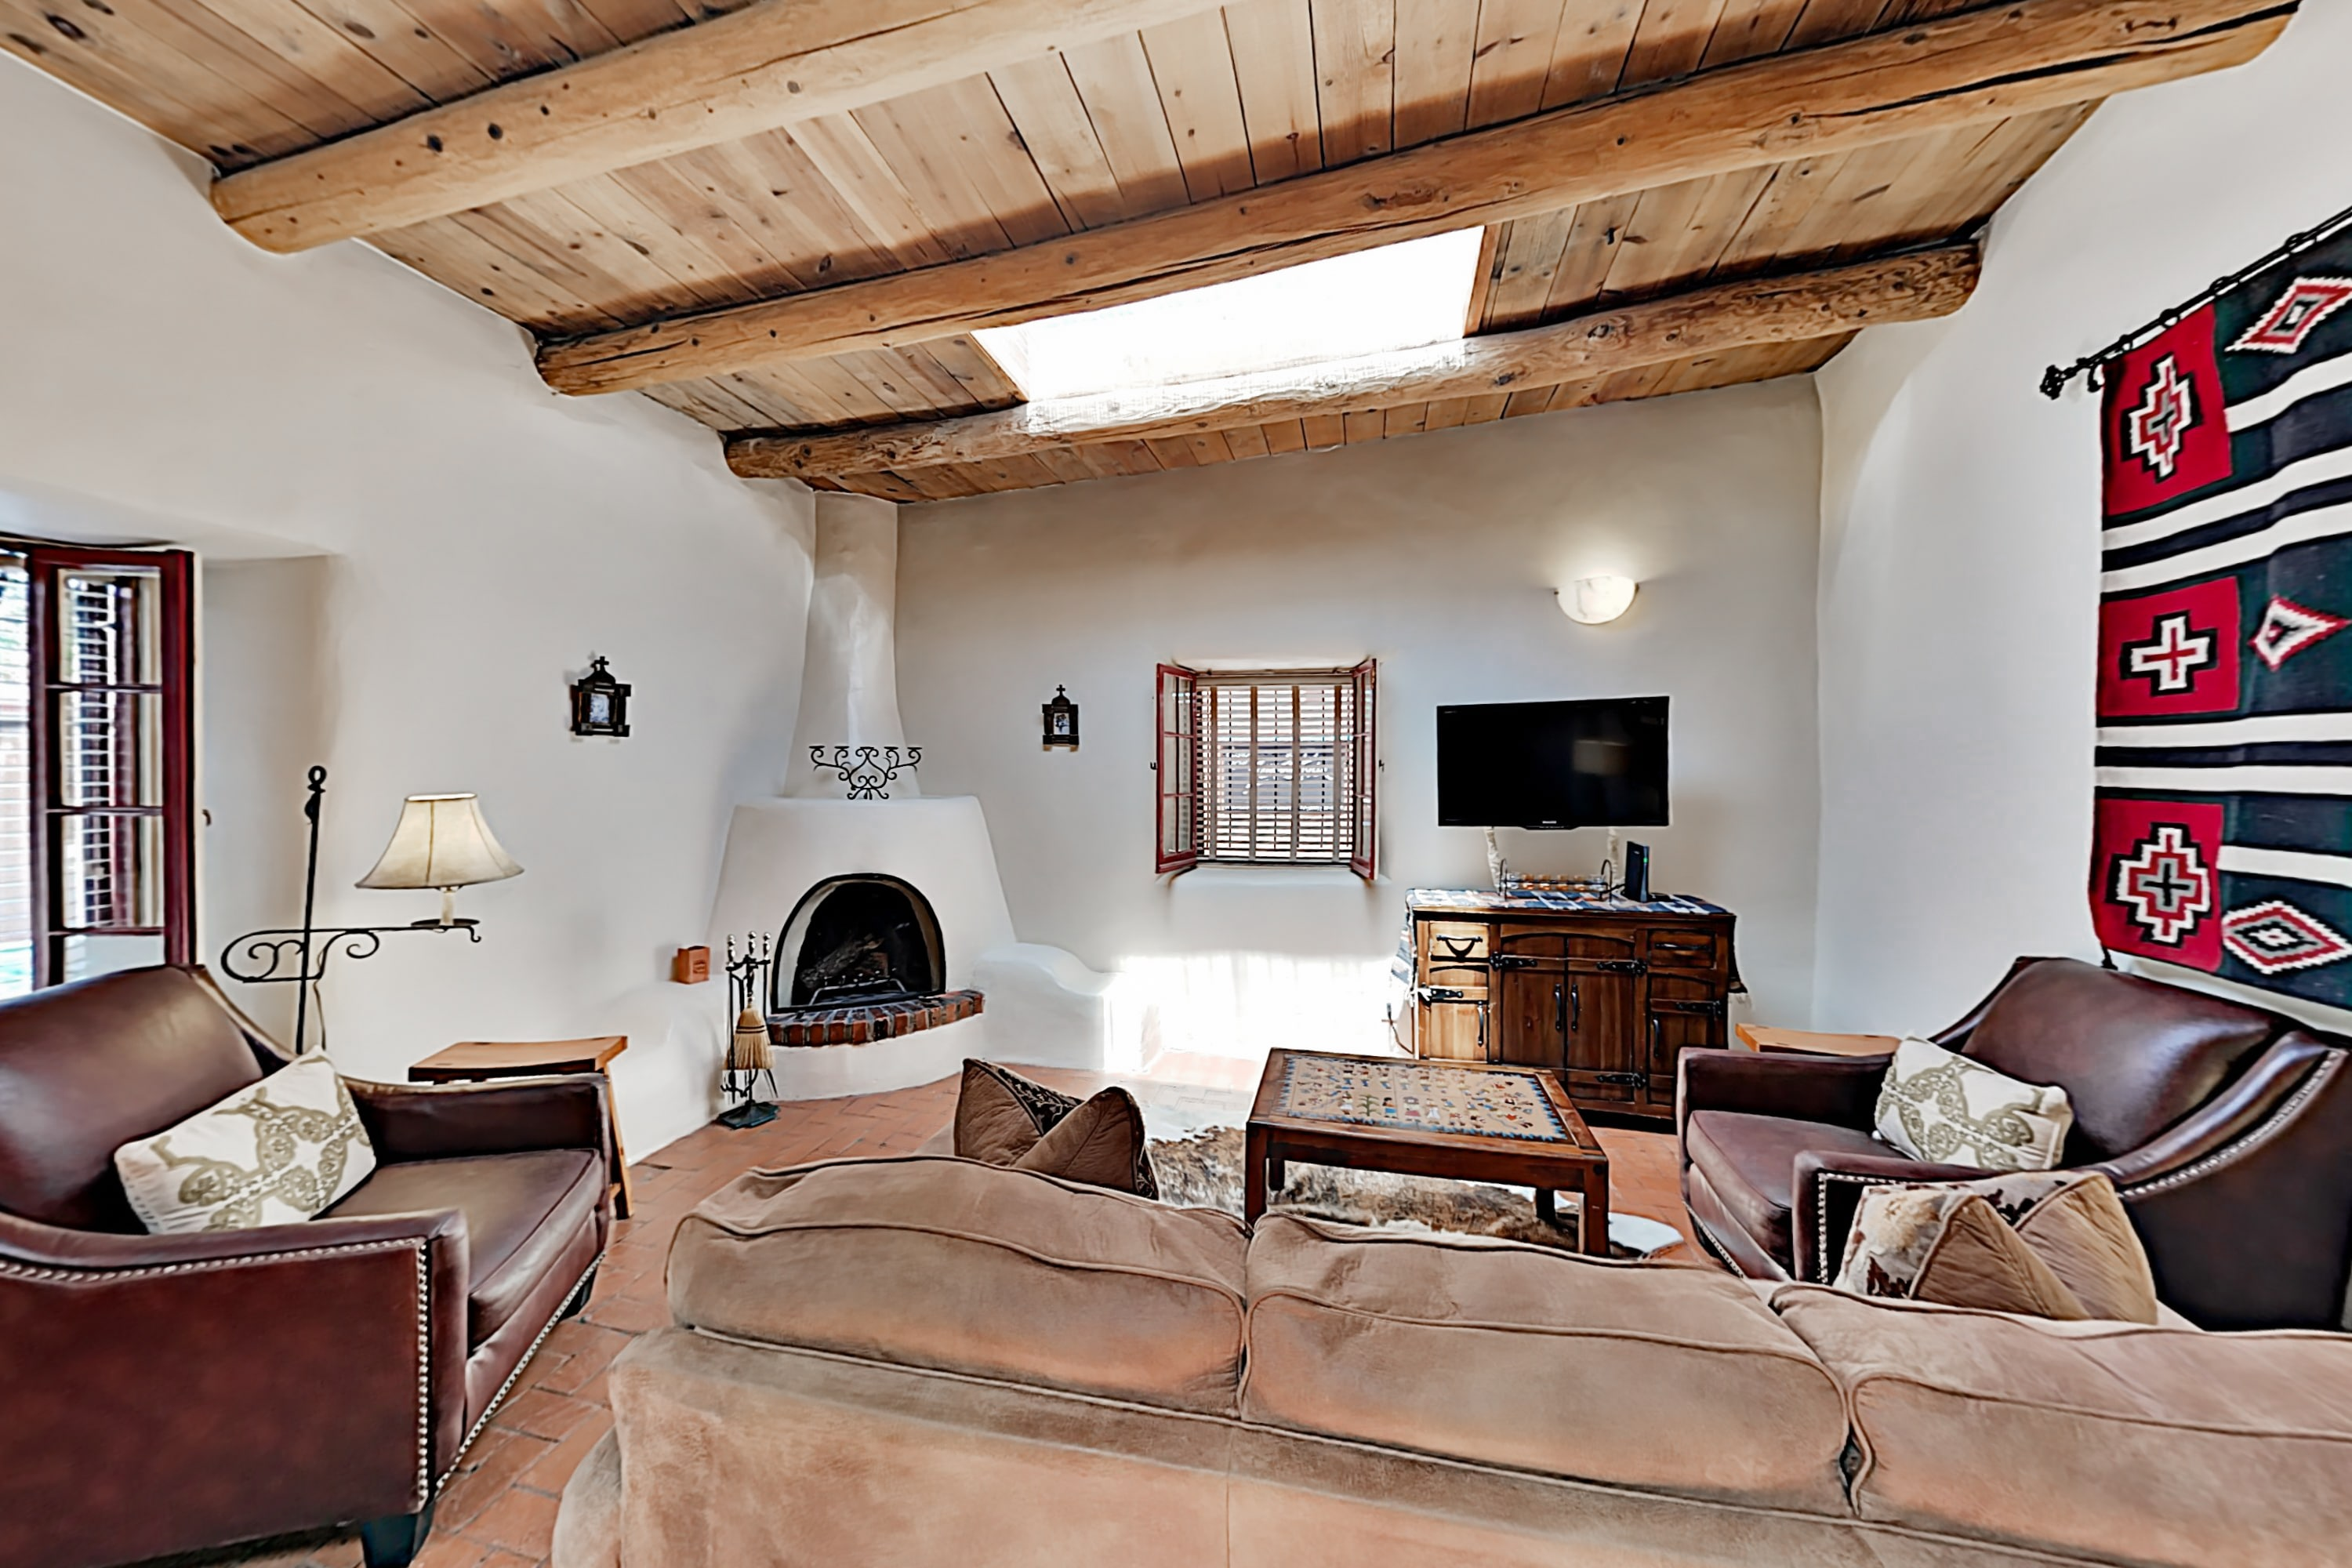 Reposada: Charming Condo w/ Courtyard & Fireplaces